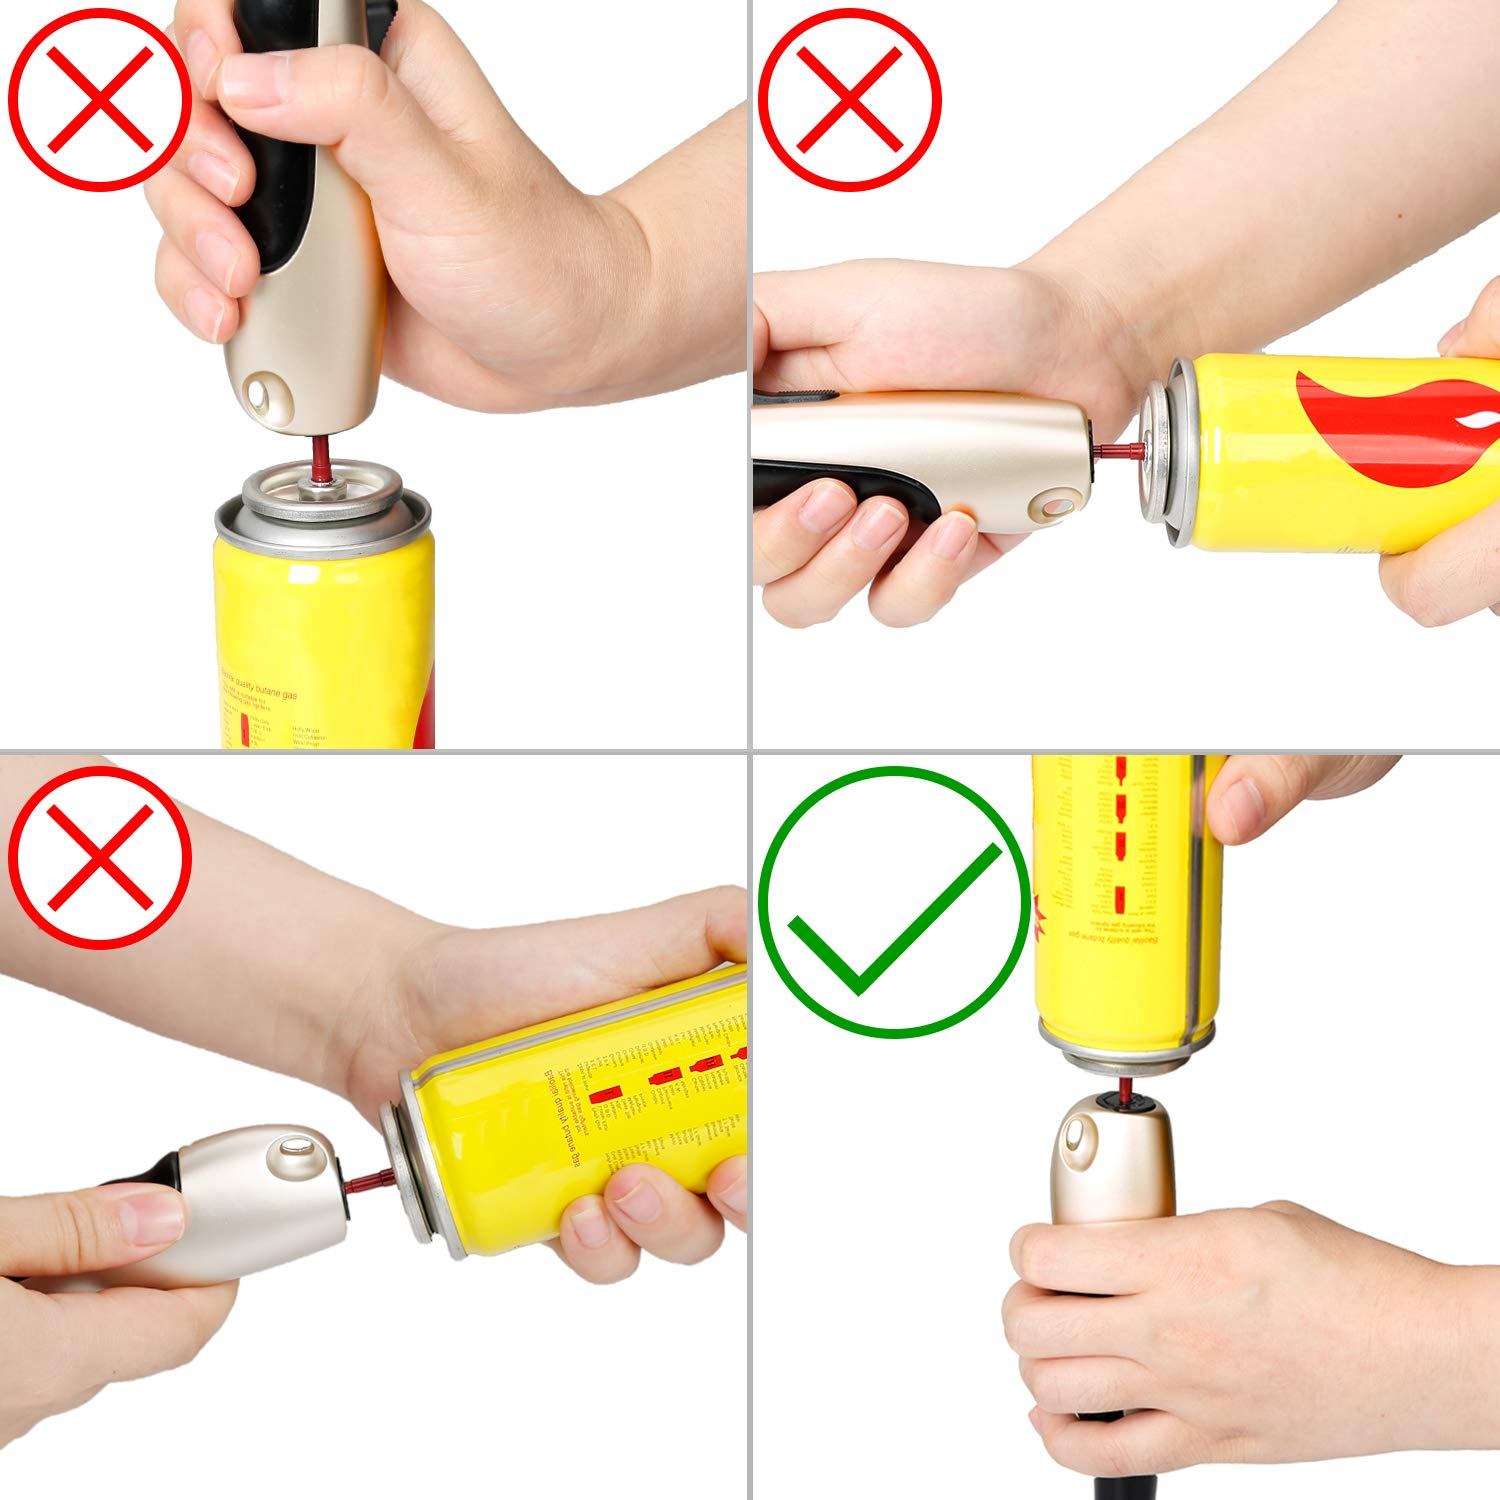 KOLIFEGOODS Butane Lighter Torch Lighter Jet Flame Long Lighter Refillable Candle Lighter Flexible Grill Lighter for Fireplace Candle Gas BBQ Fire Lighter(Butane Not Included for Shipping Safety